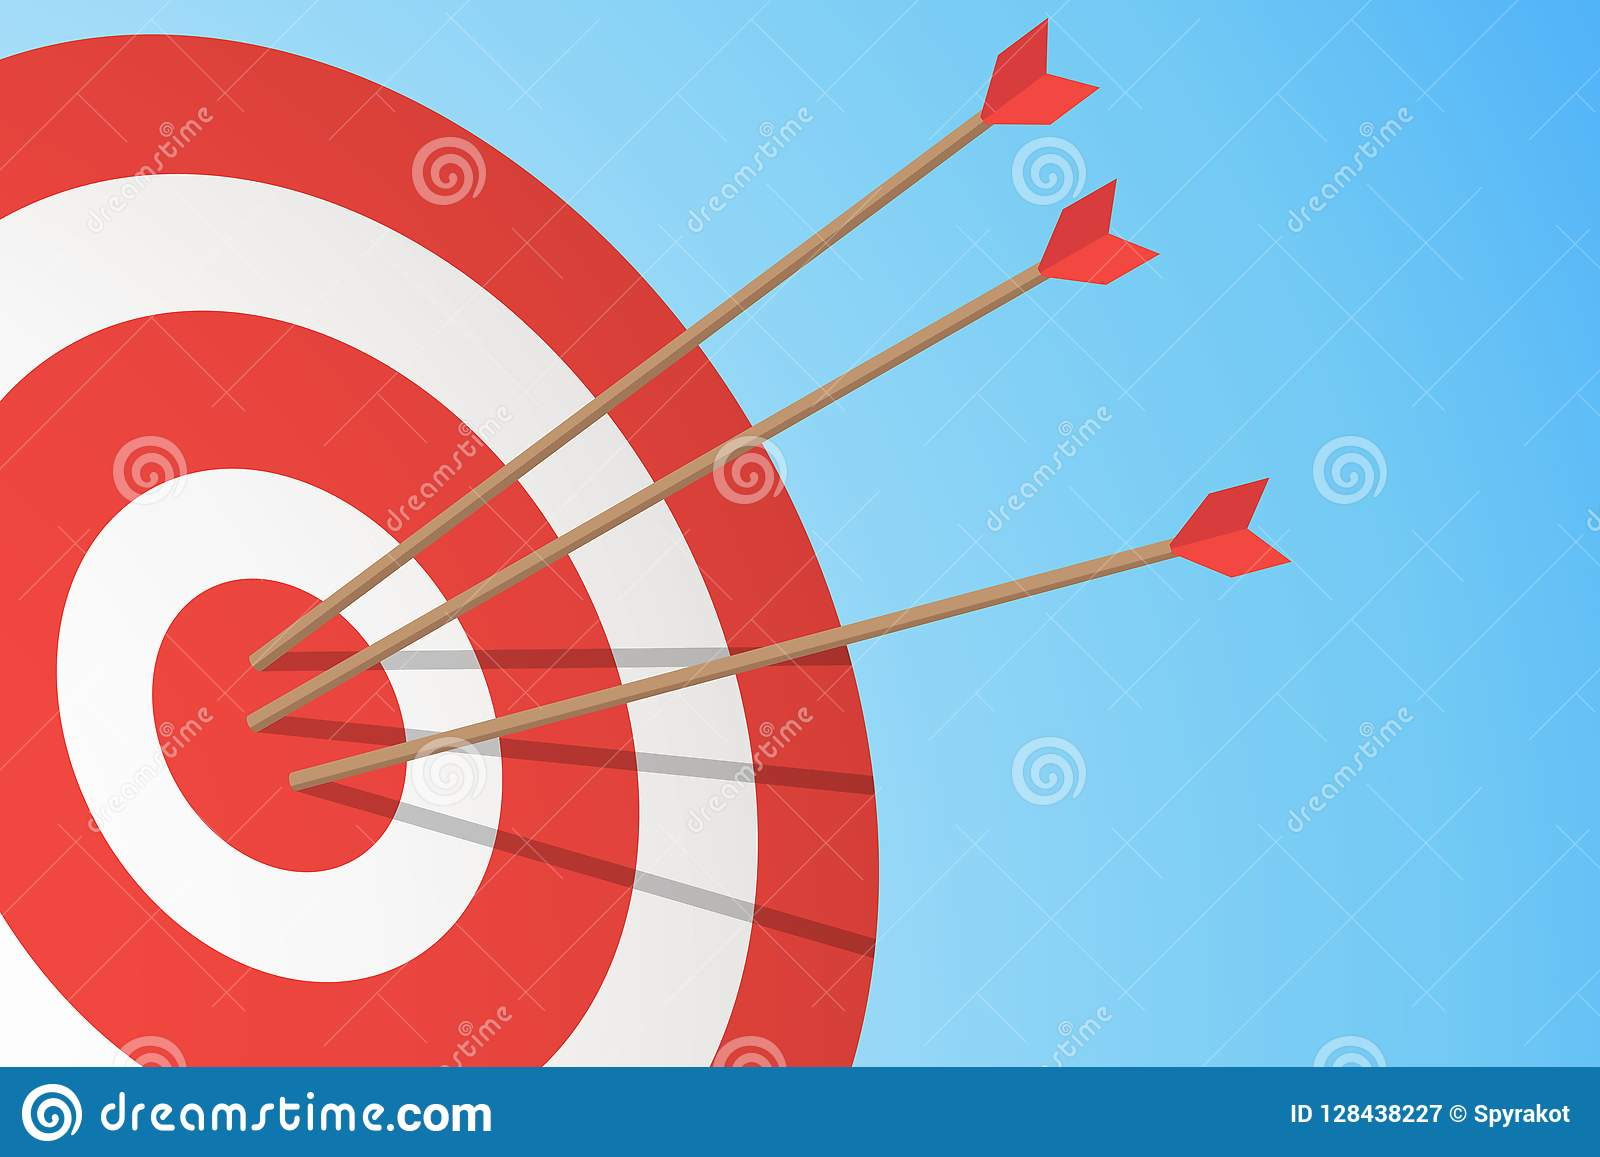 Arrows hitting a target. One target and three arrows. Business goal concept. Vector illustration